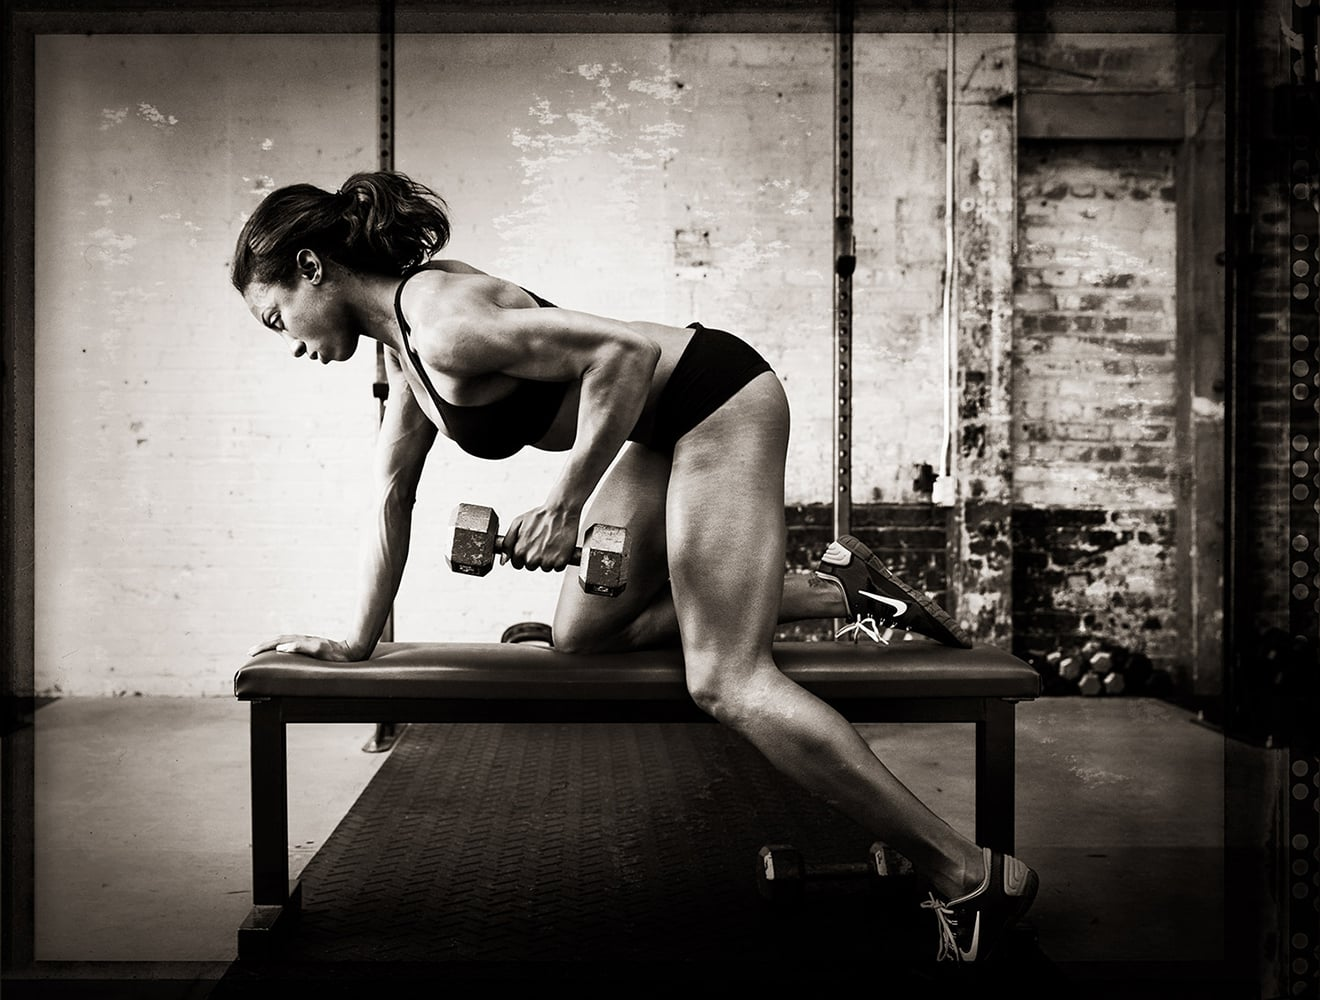 Female-athlete-working-out-with-weights-in-gym-Rod-McLean